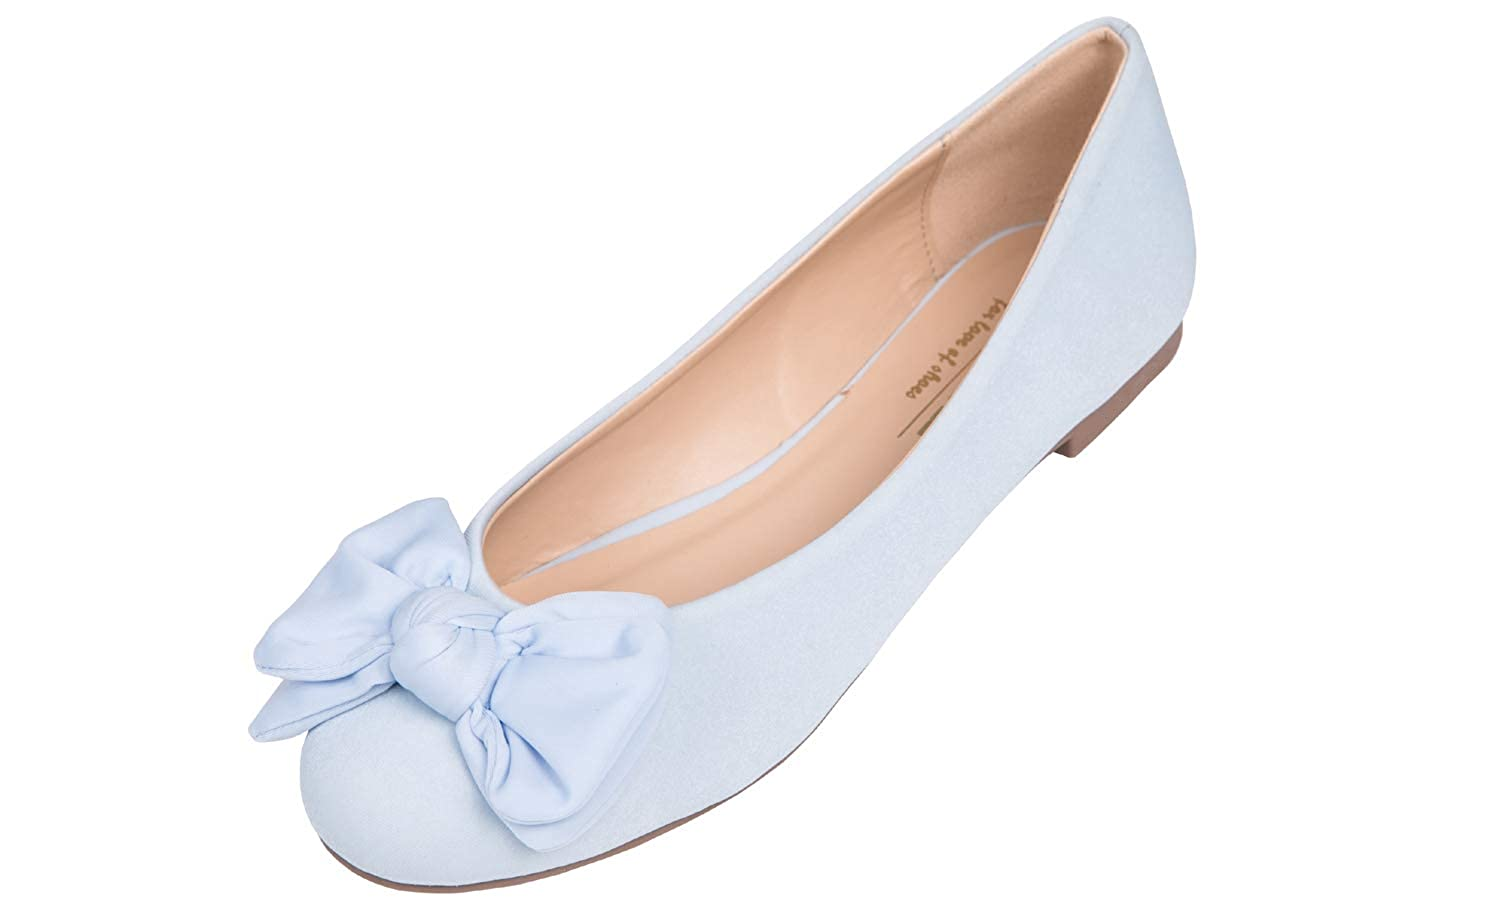 Vintage Style Shoes, Vintage Inspired Shoes Feversole Womens Round Toe Cute Bow Trim Ballet Flats $19.99 AT vintagedancer.com